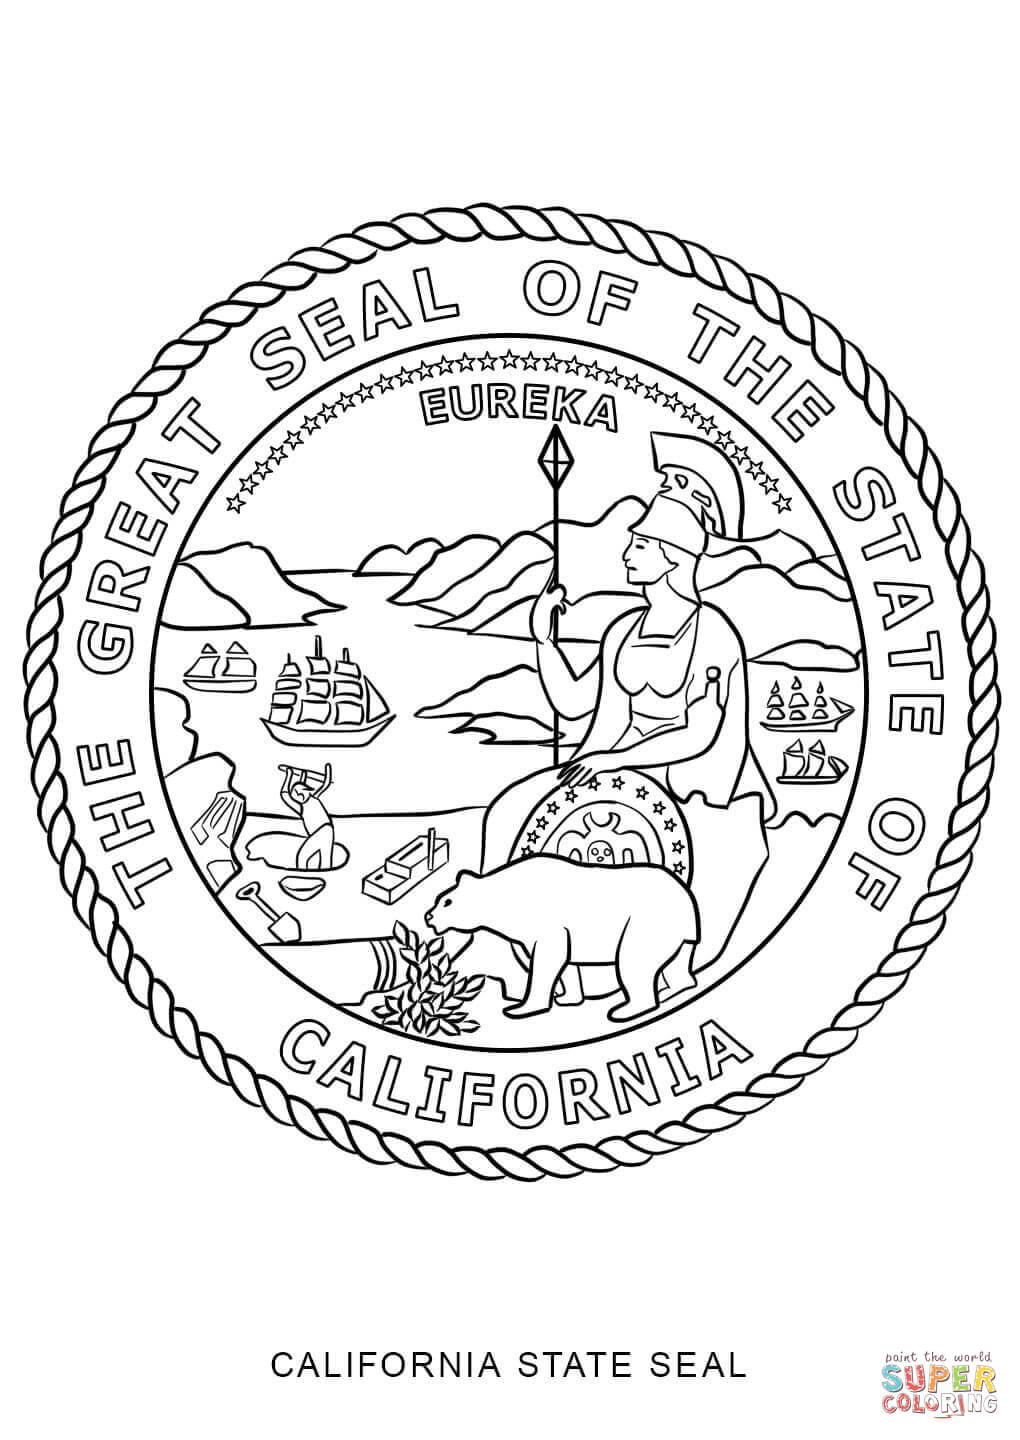 ca state seal california state seal coloring page free printable ca state seal